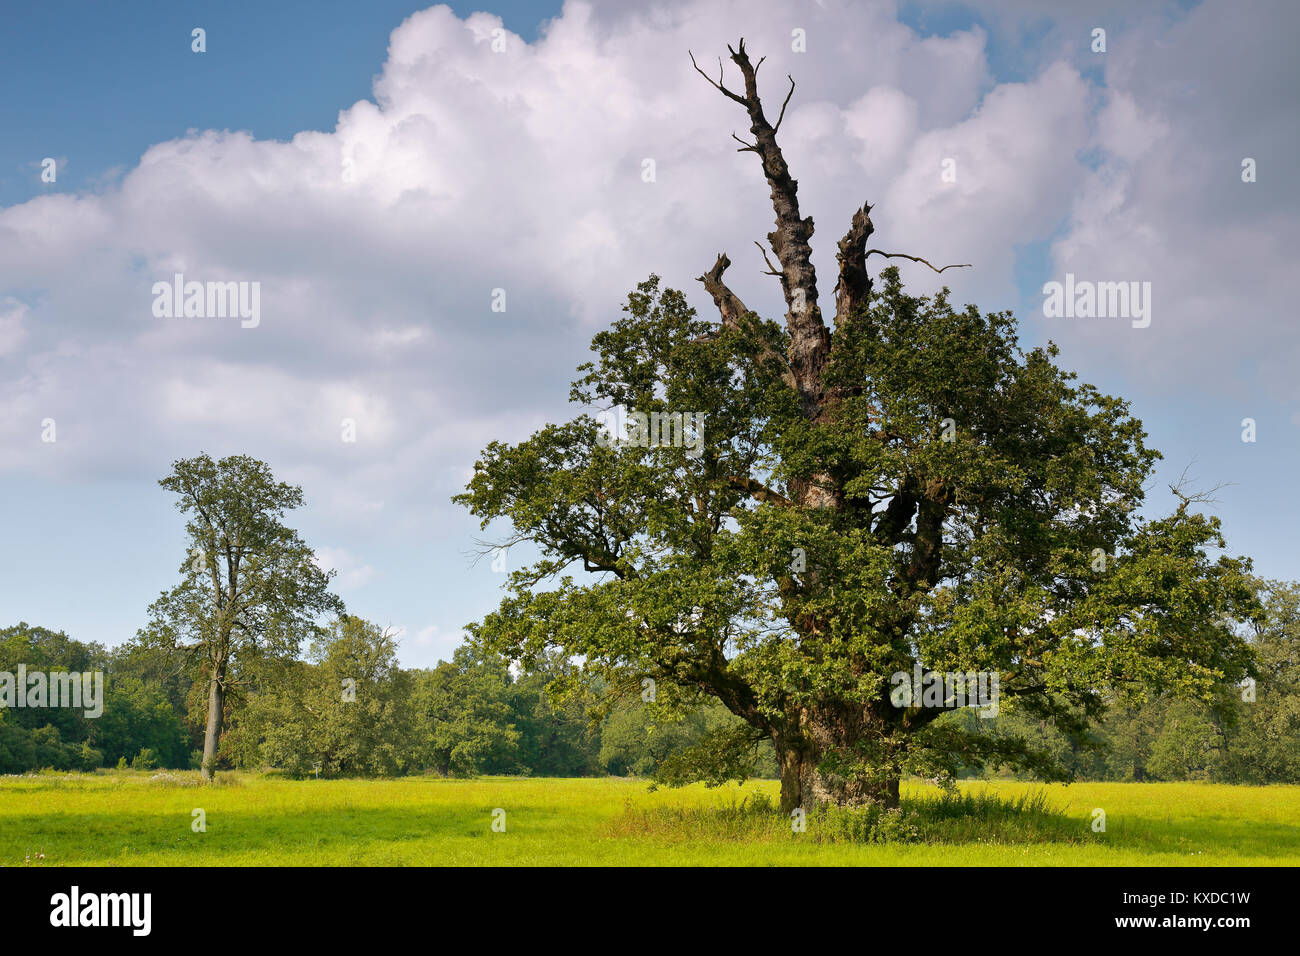 650 years old English oak (Quercus robur) in summer, solitaire tree, alluvial forest, Biosphere Reserve Middle Elbe - Stock Image